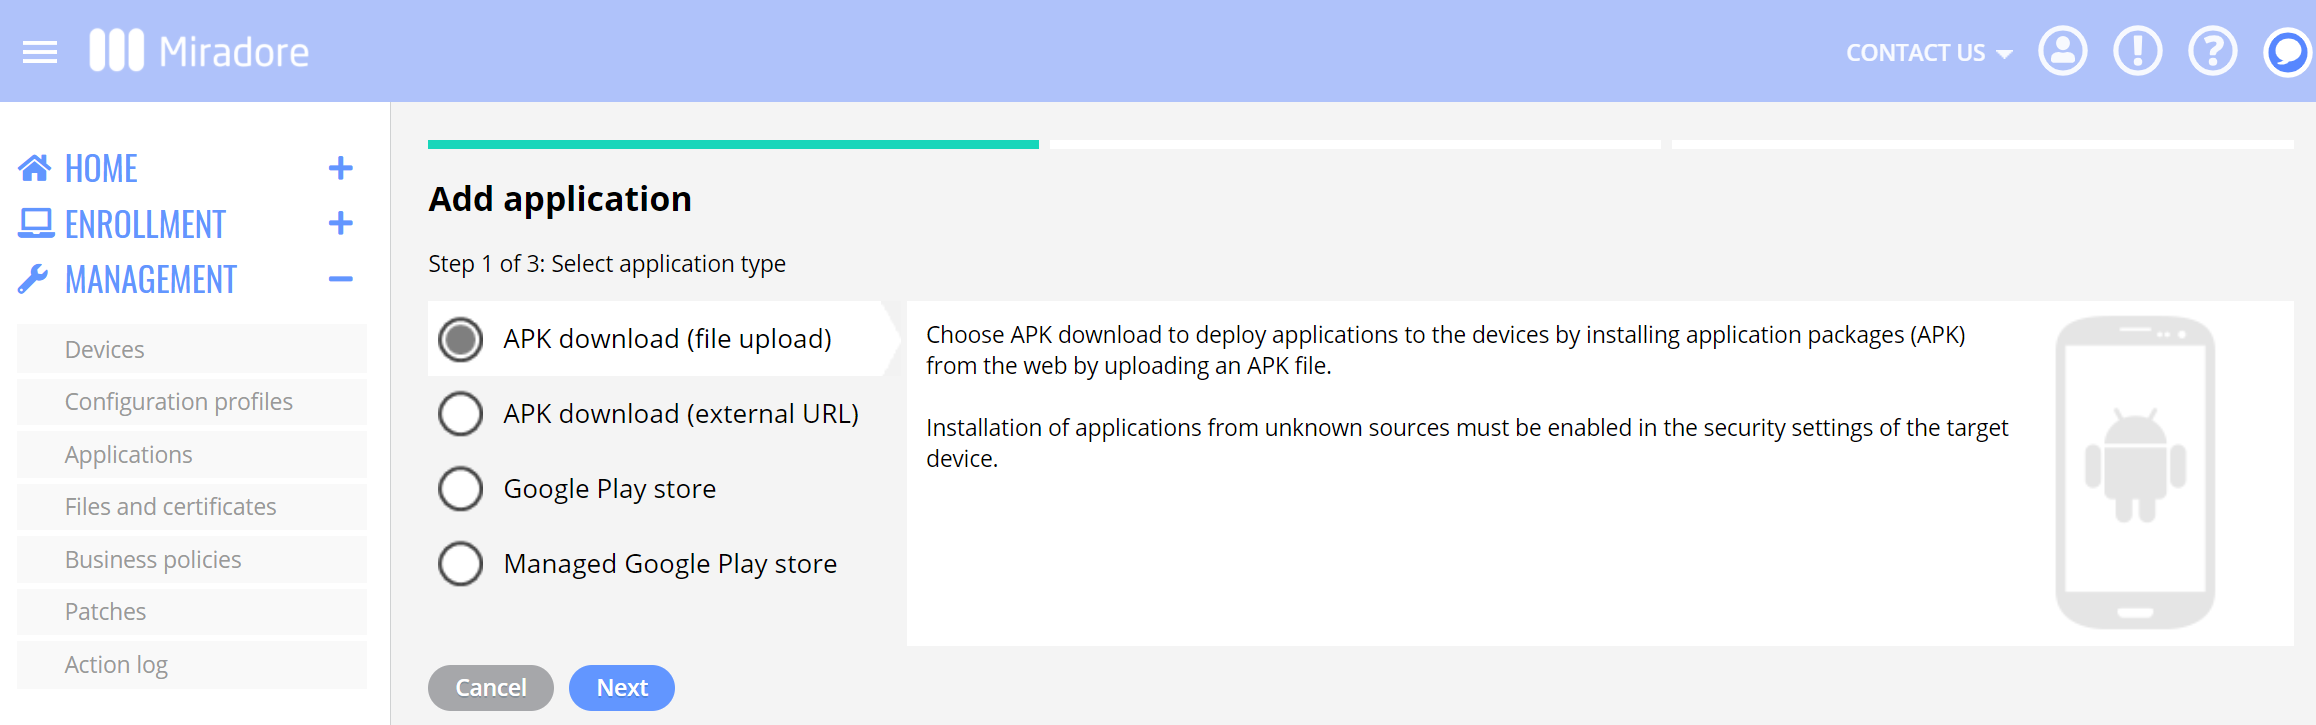 Add APK download to Miradore